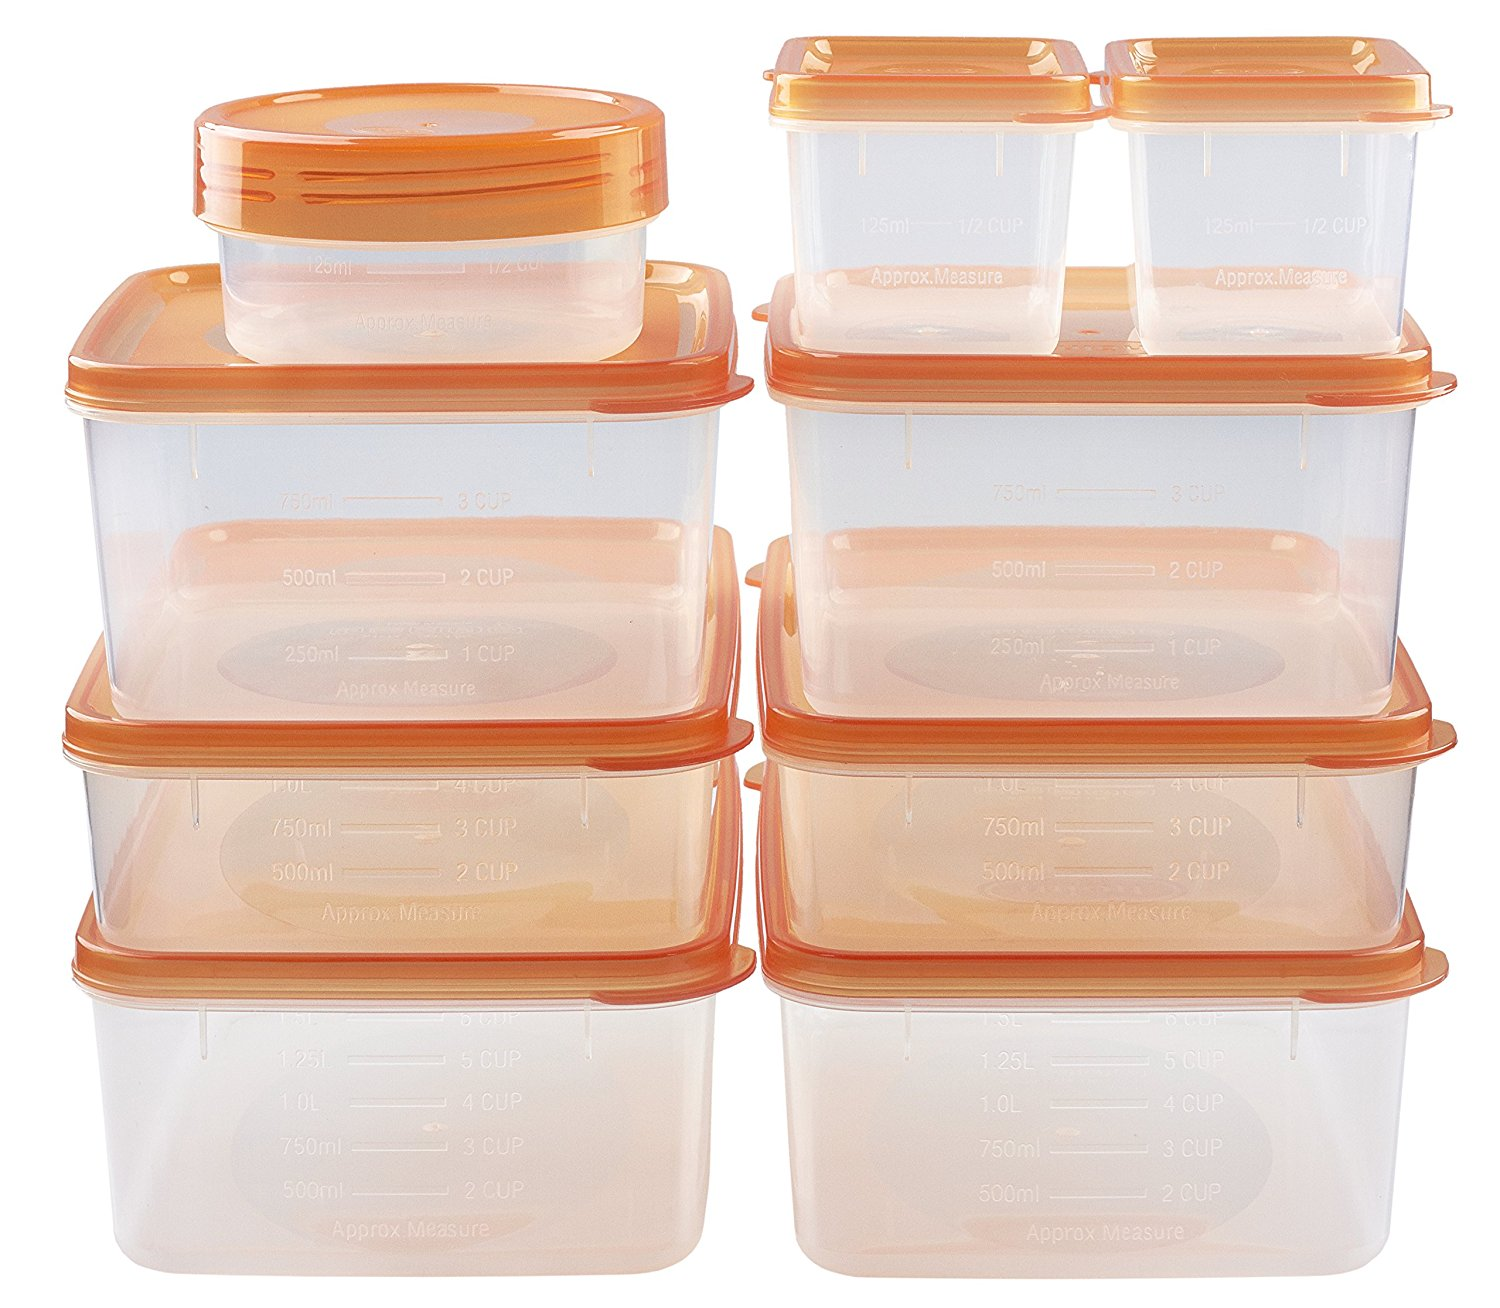 3. hölm BPA Free Reusable Square Food Storage Containers with Lids  sc 1 st  Top 10 Geeks & ? Best Food Storage Containers || Reviews ? Compare NOW!